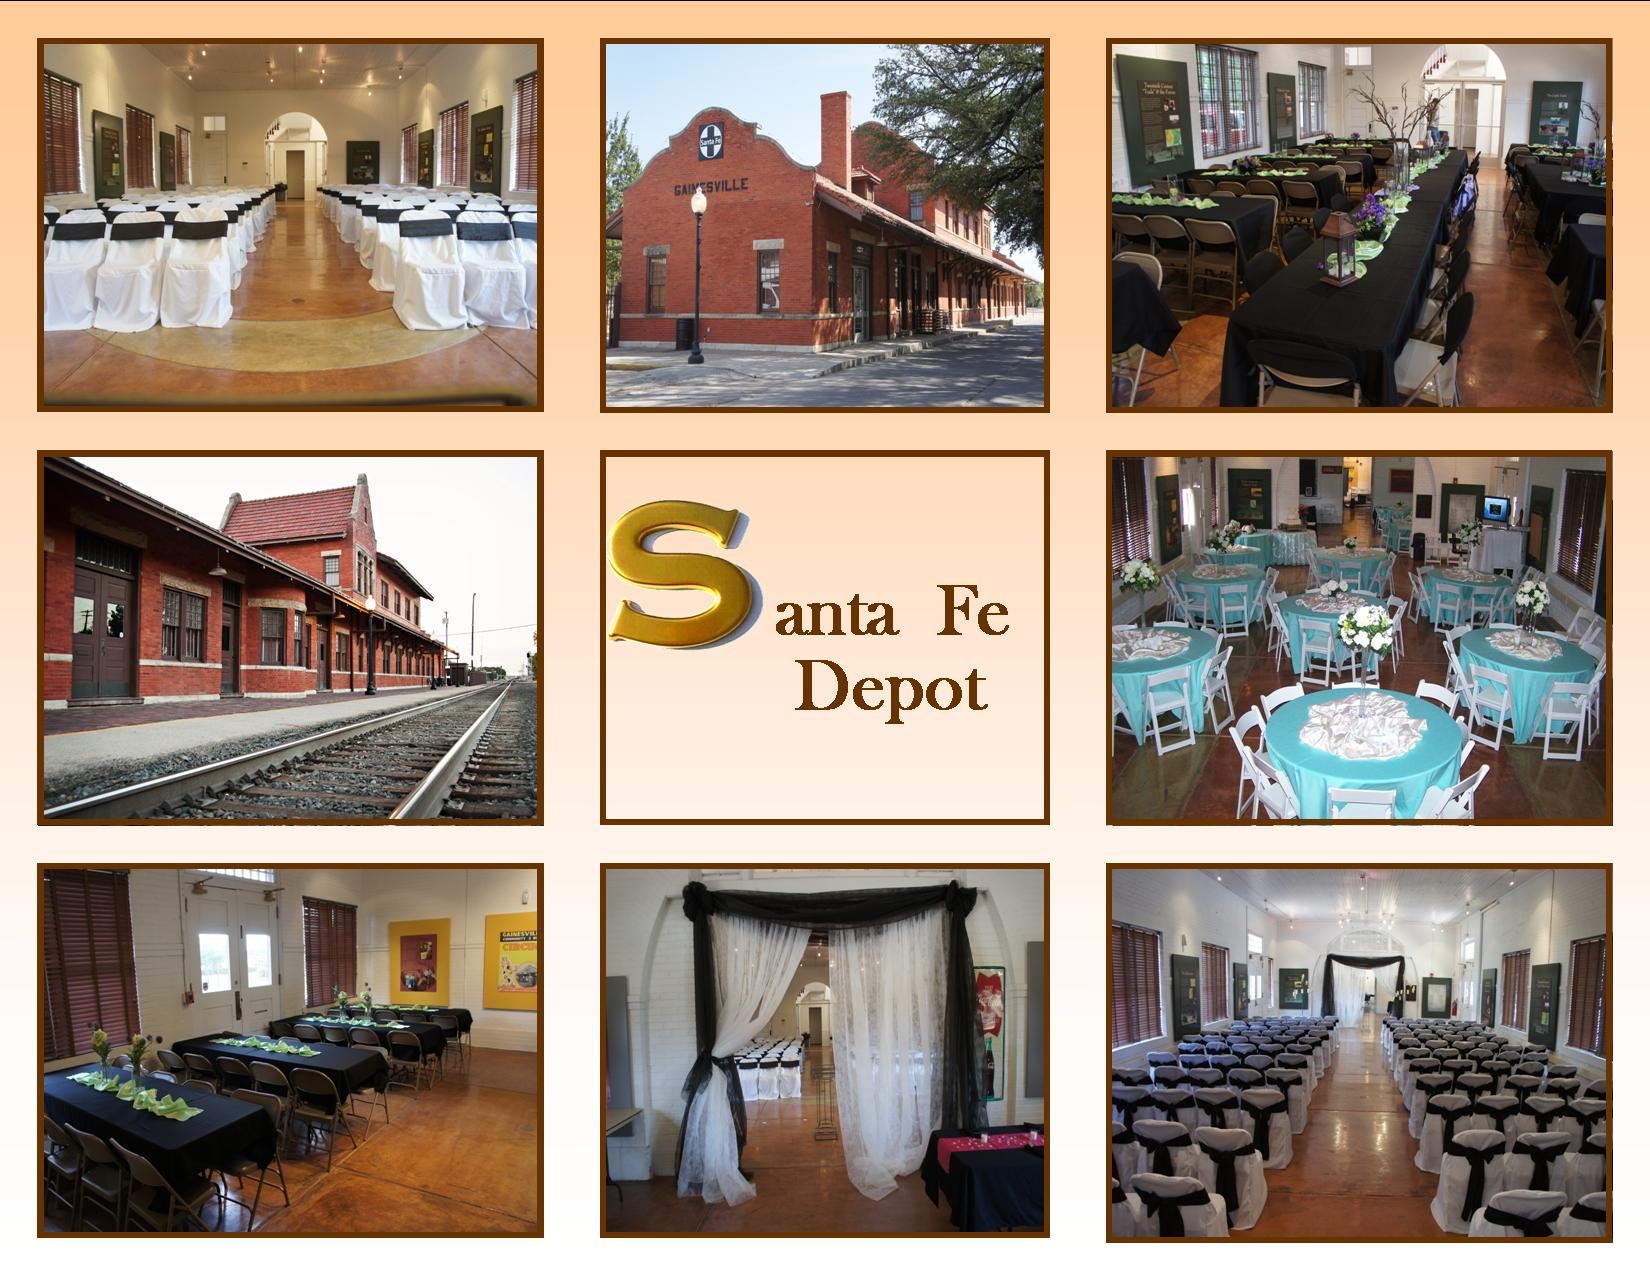 Sante Fe Depot Photo Collage